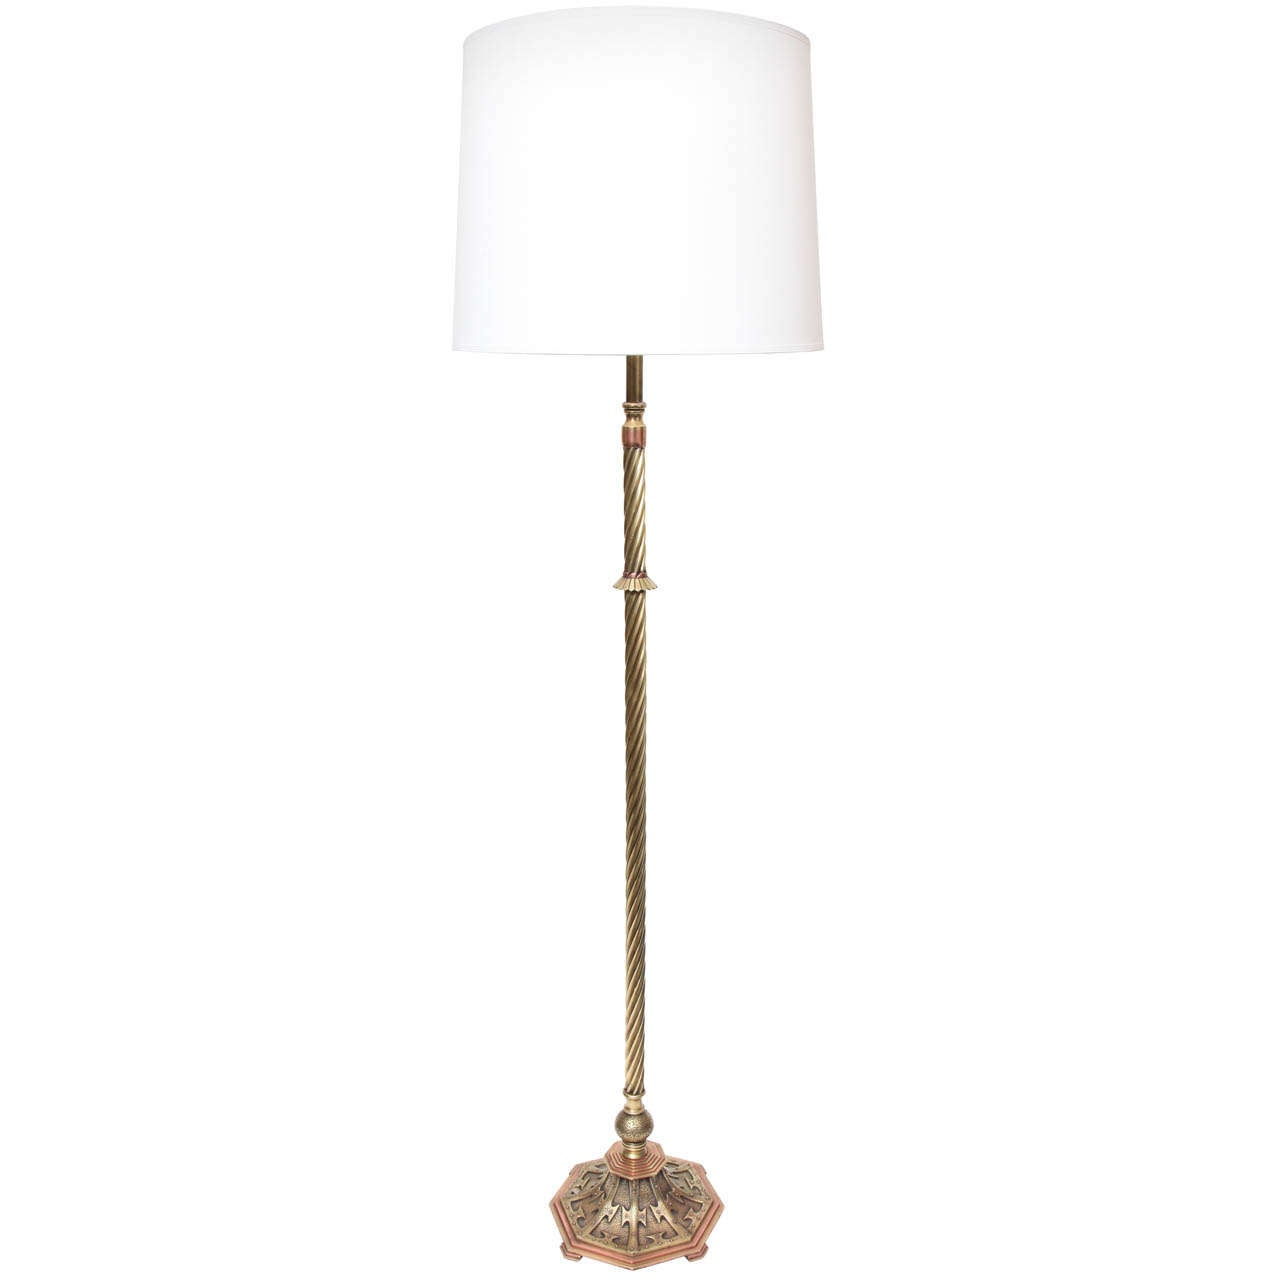 An exquisite 1920 39 s art deco brass and bronze floor lamp for 1920 floor lamp